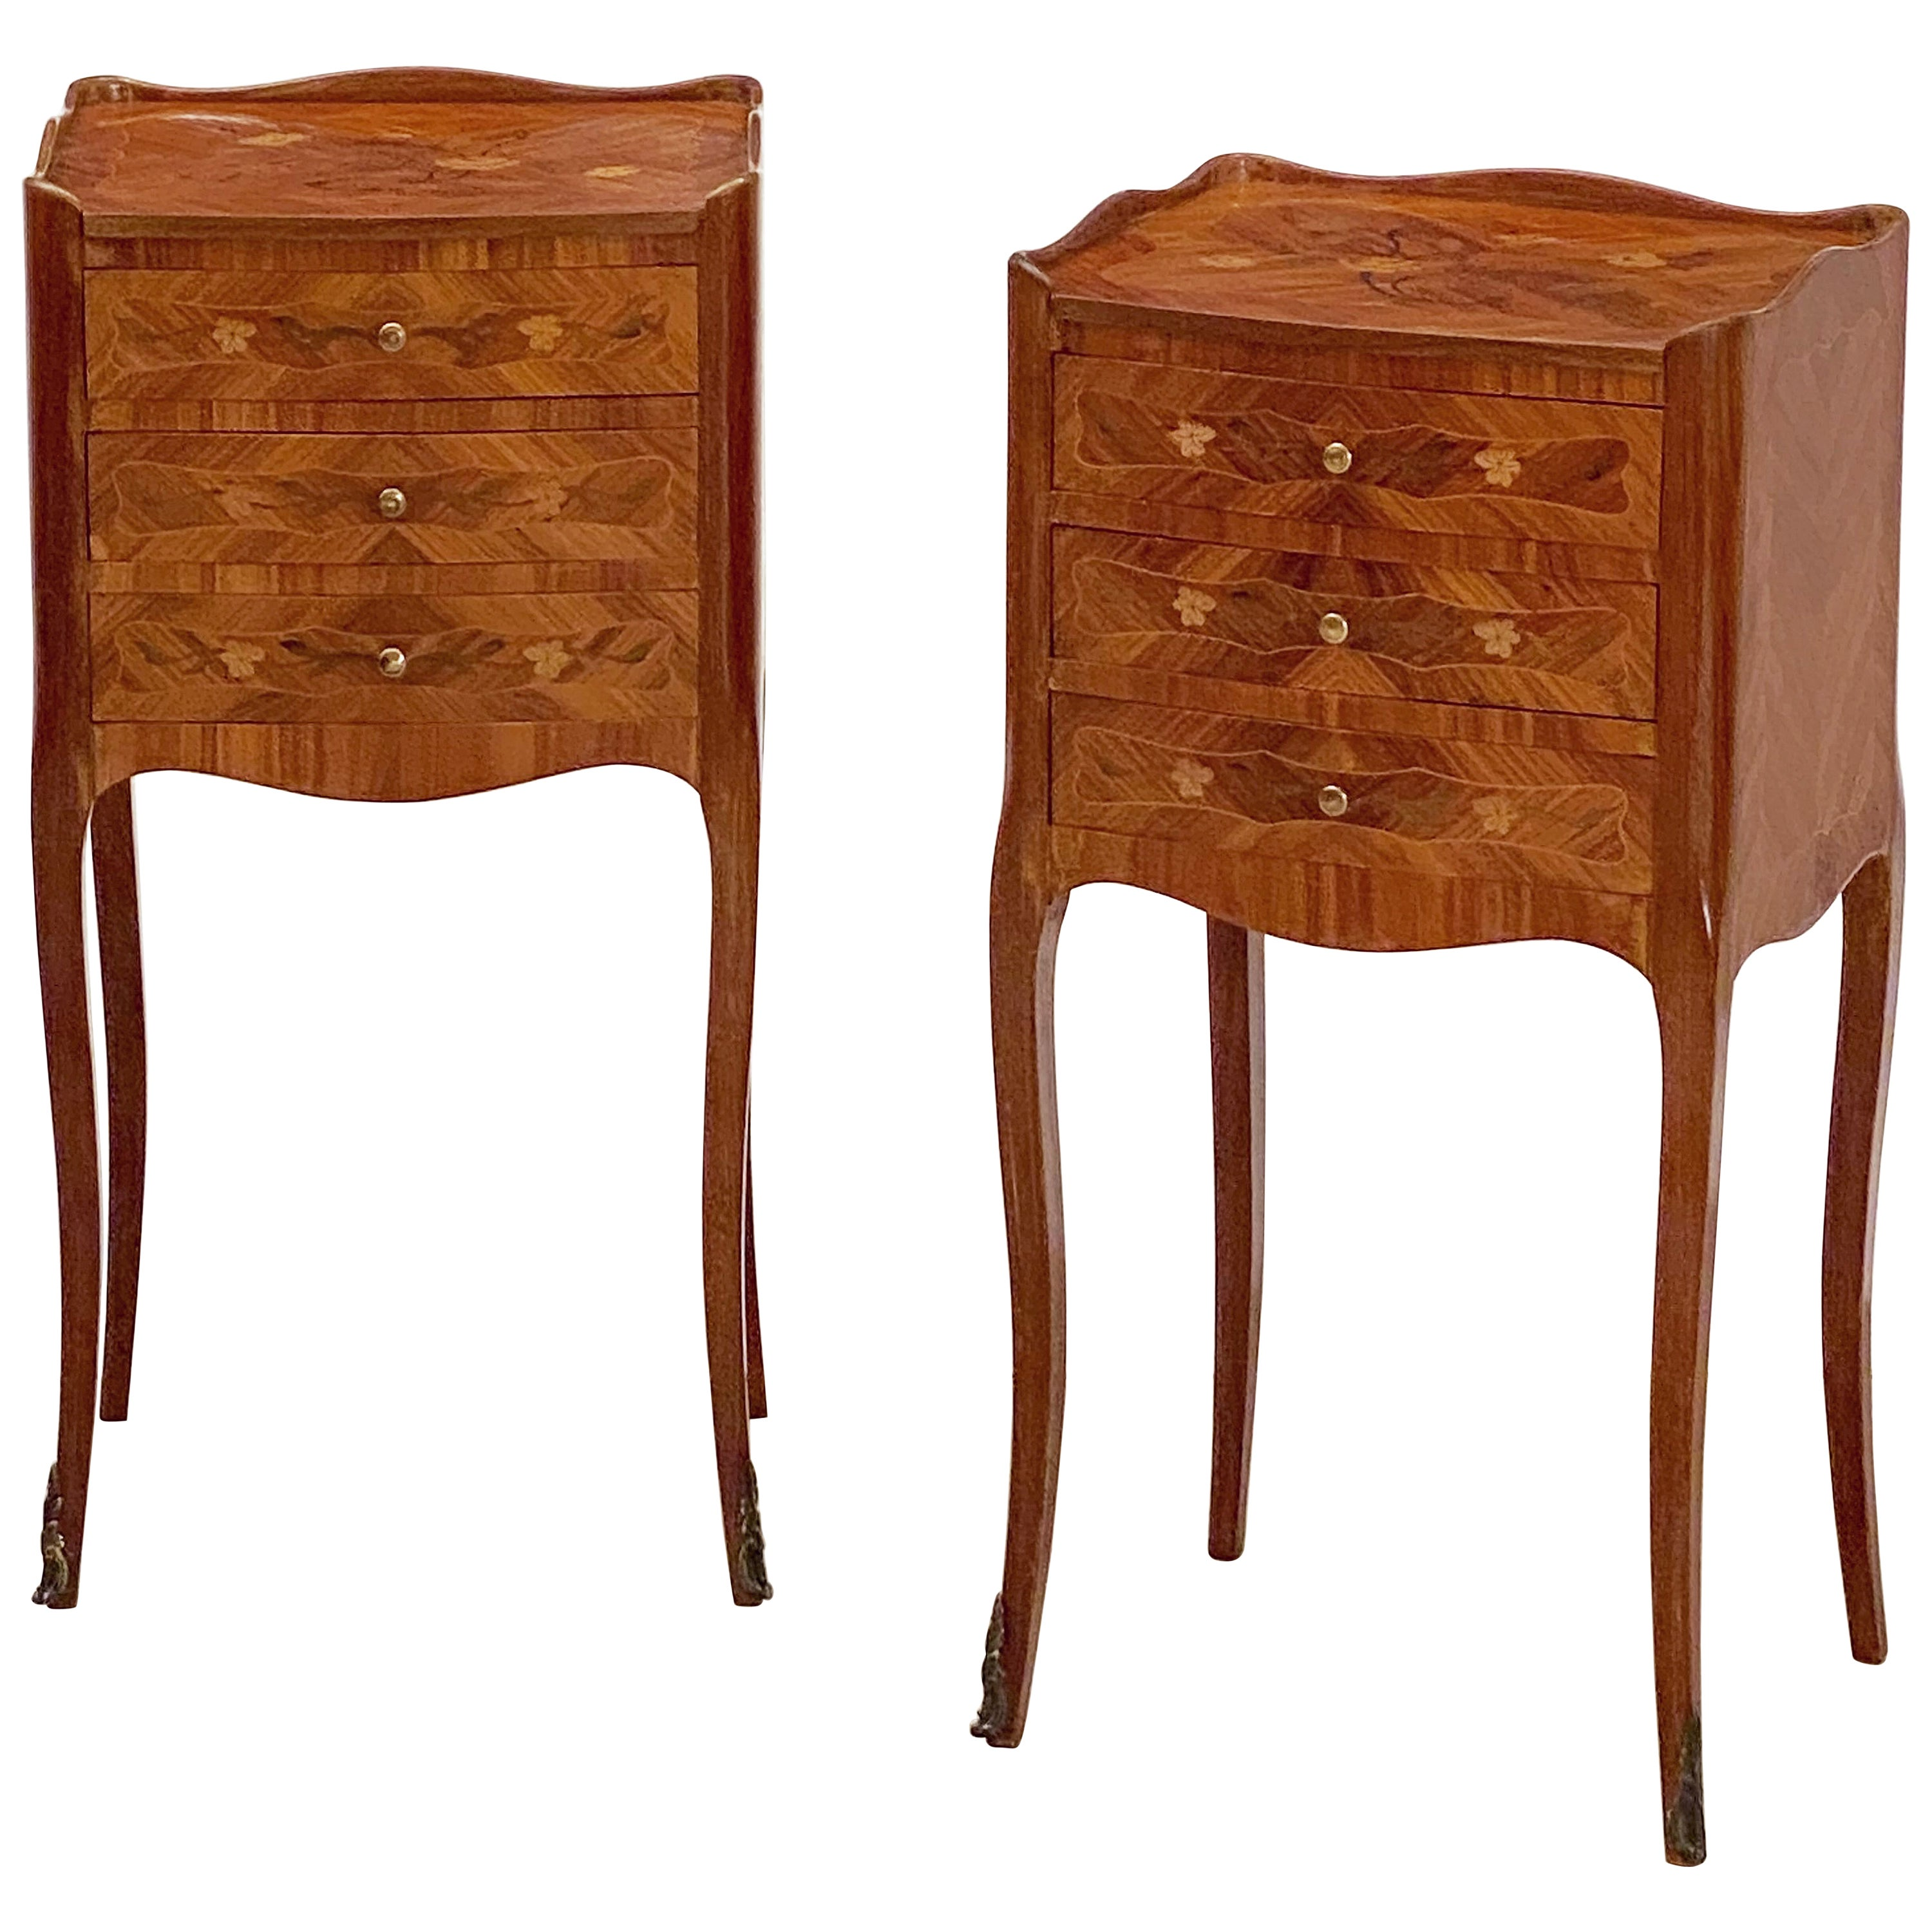 French Inlaid Nightstands or Bedside Tables 'Priced as a Pair'